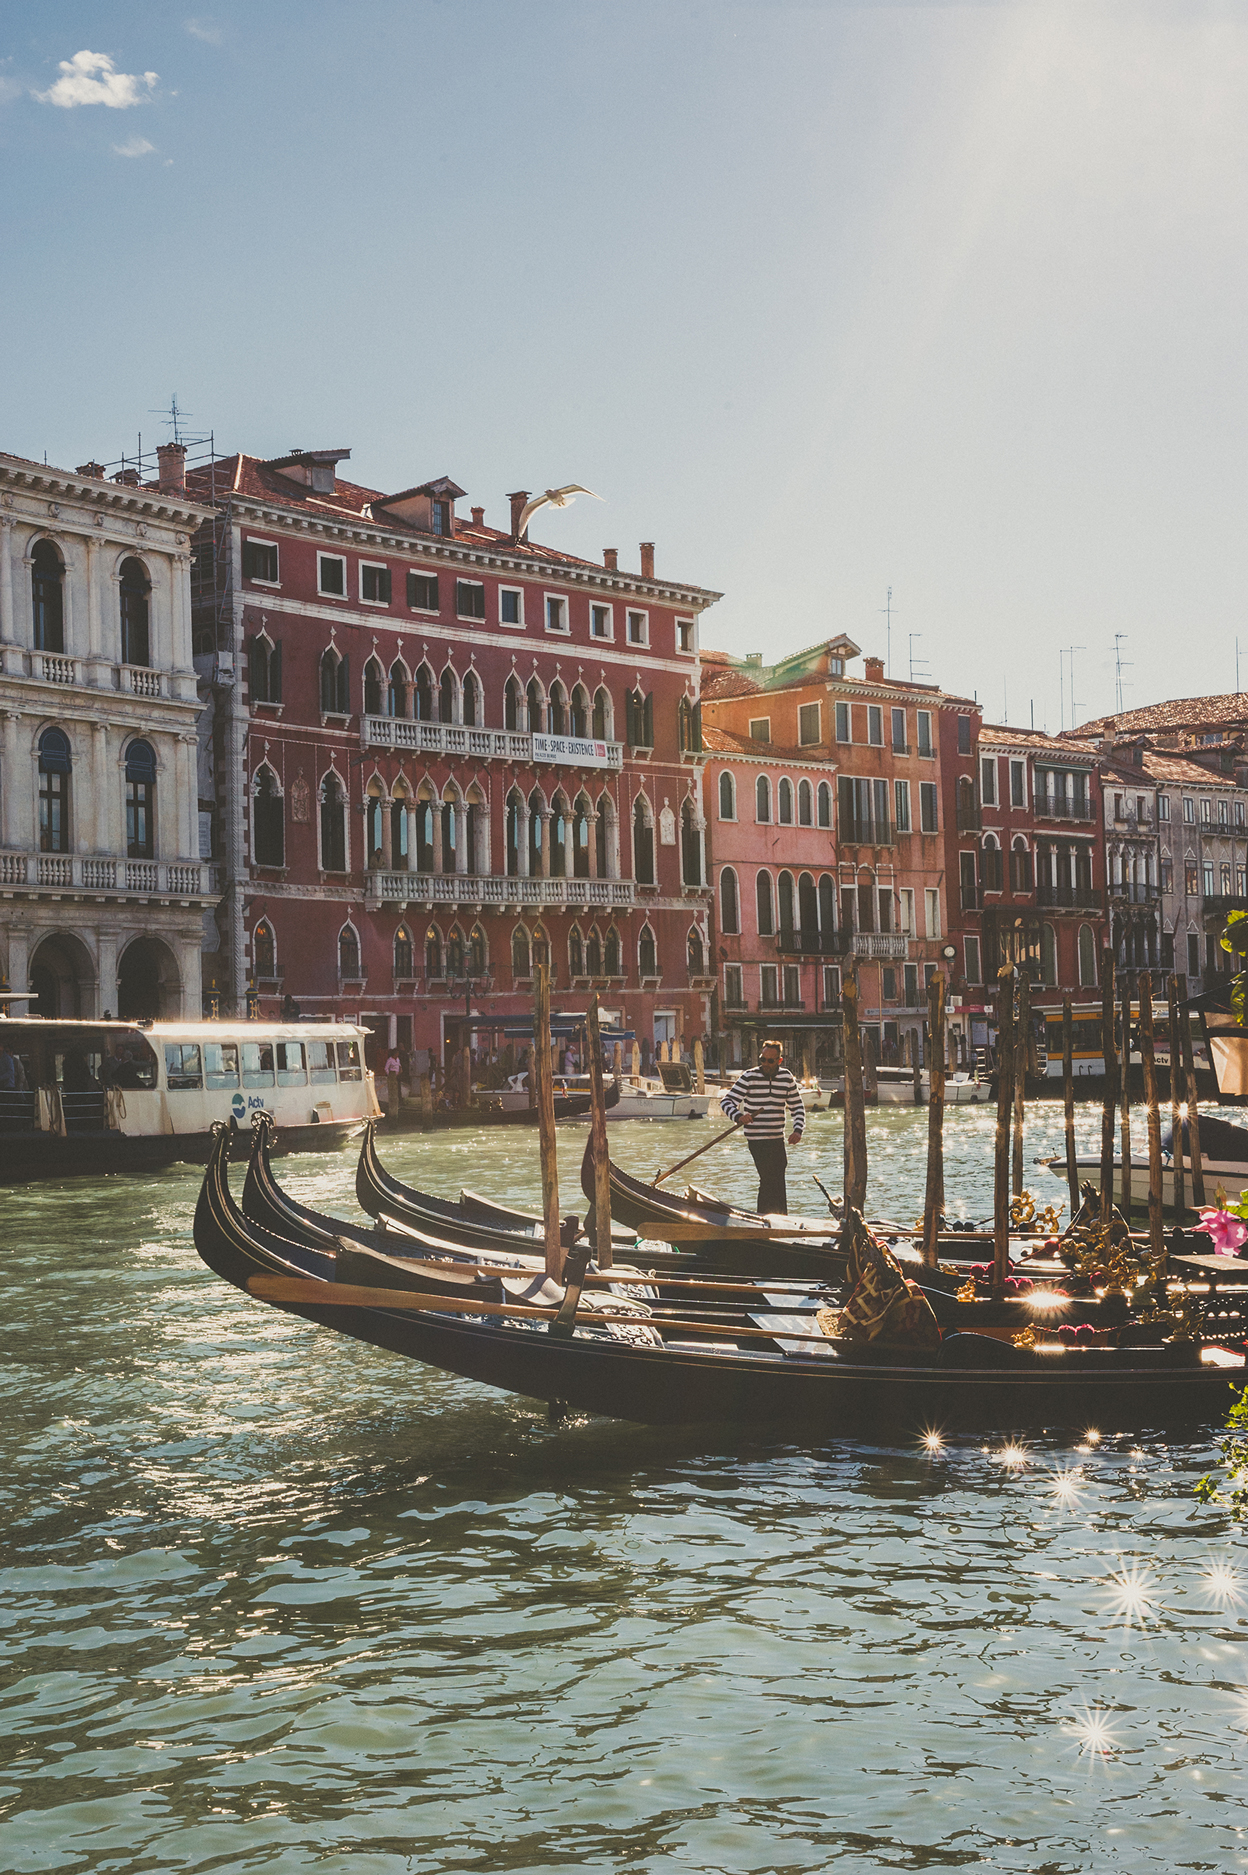 KC_Lifestyle_Photographer_OutdoorPhotography_Adventure_Photography_Venice_Italy22.jpg